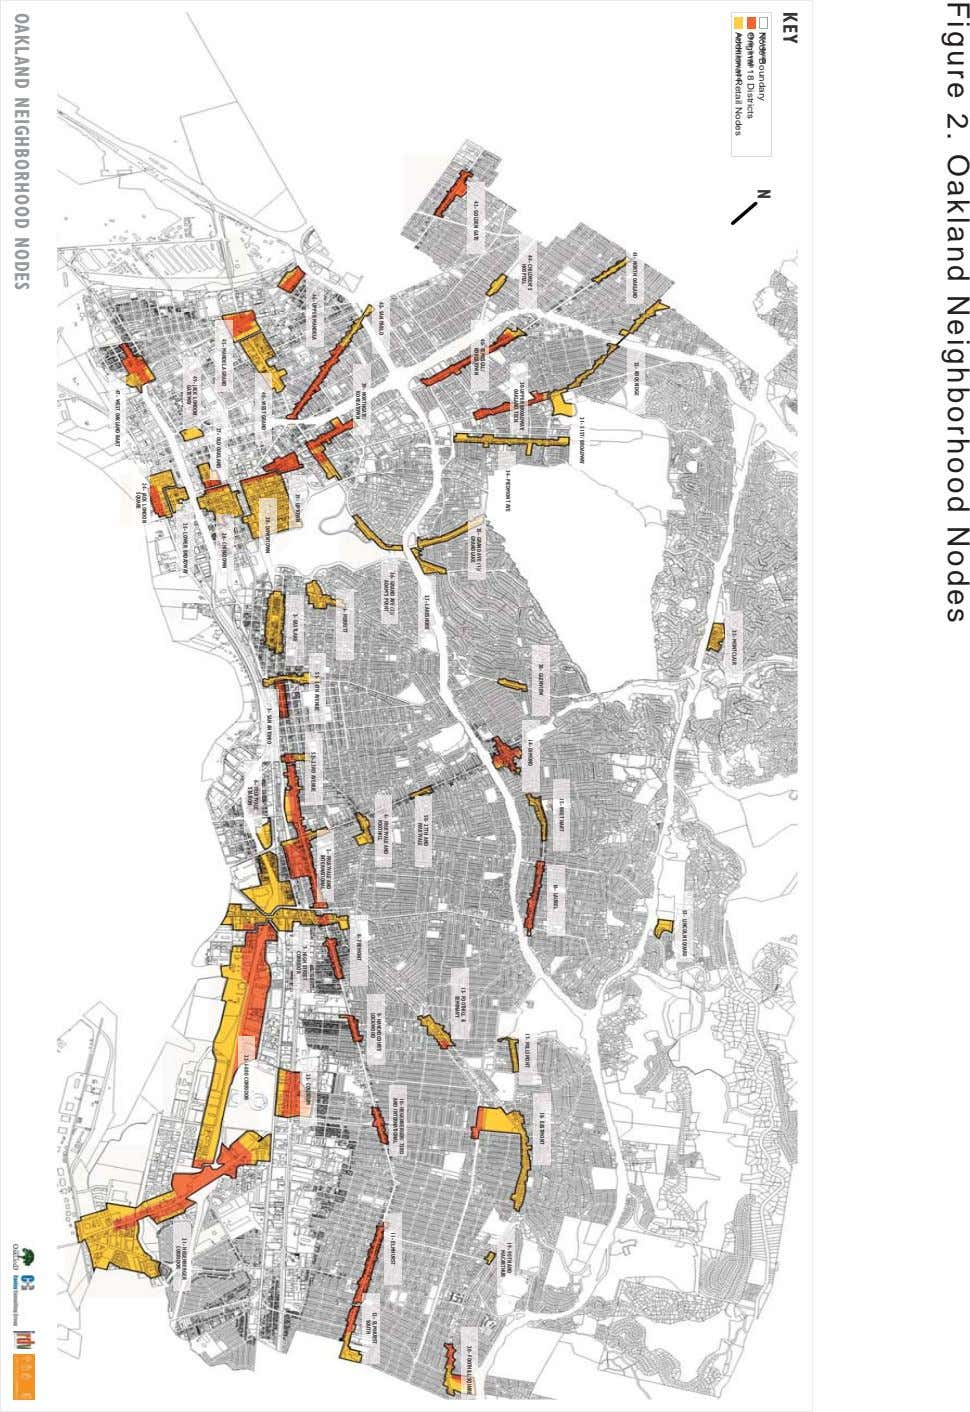 Figure 2. Oakland Neighborhood Nodes Node Boundary Original 18 Districts Additional Retail Nodes